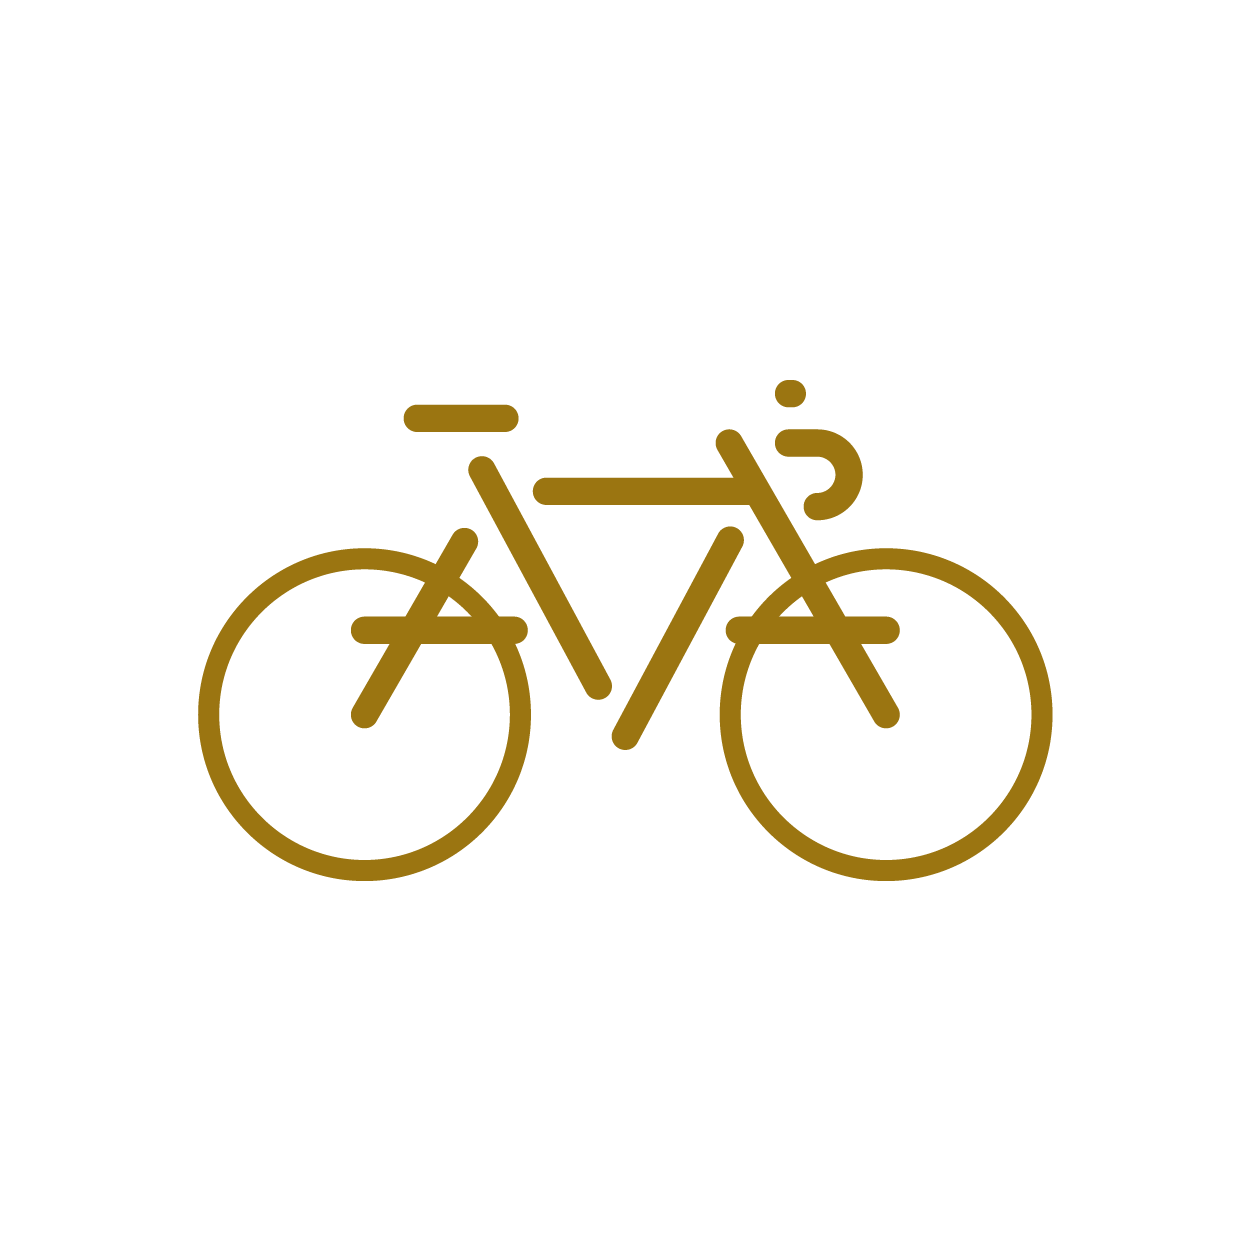 bikes-05.png